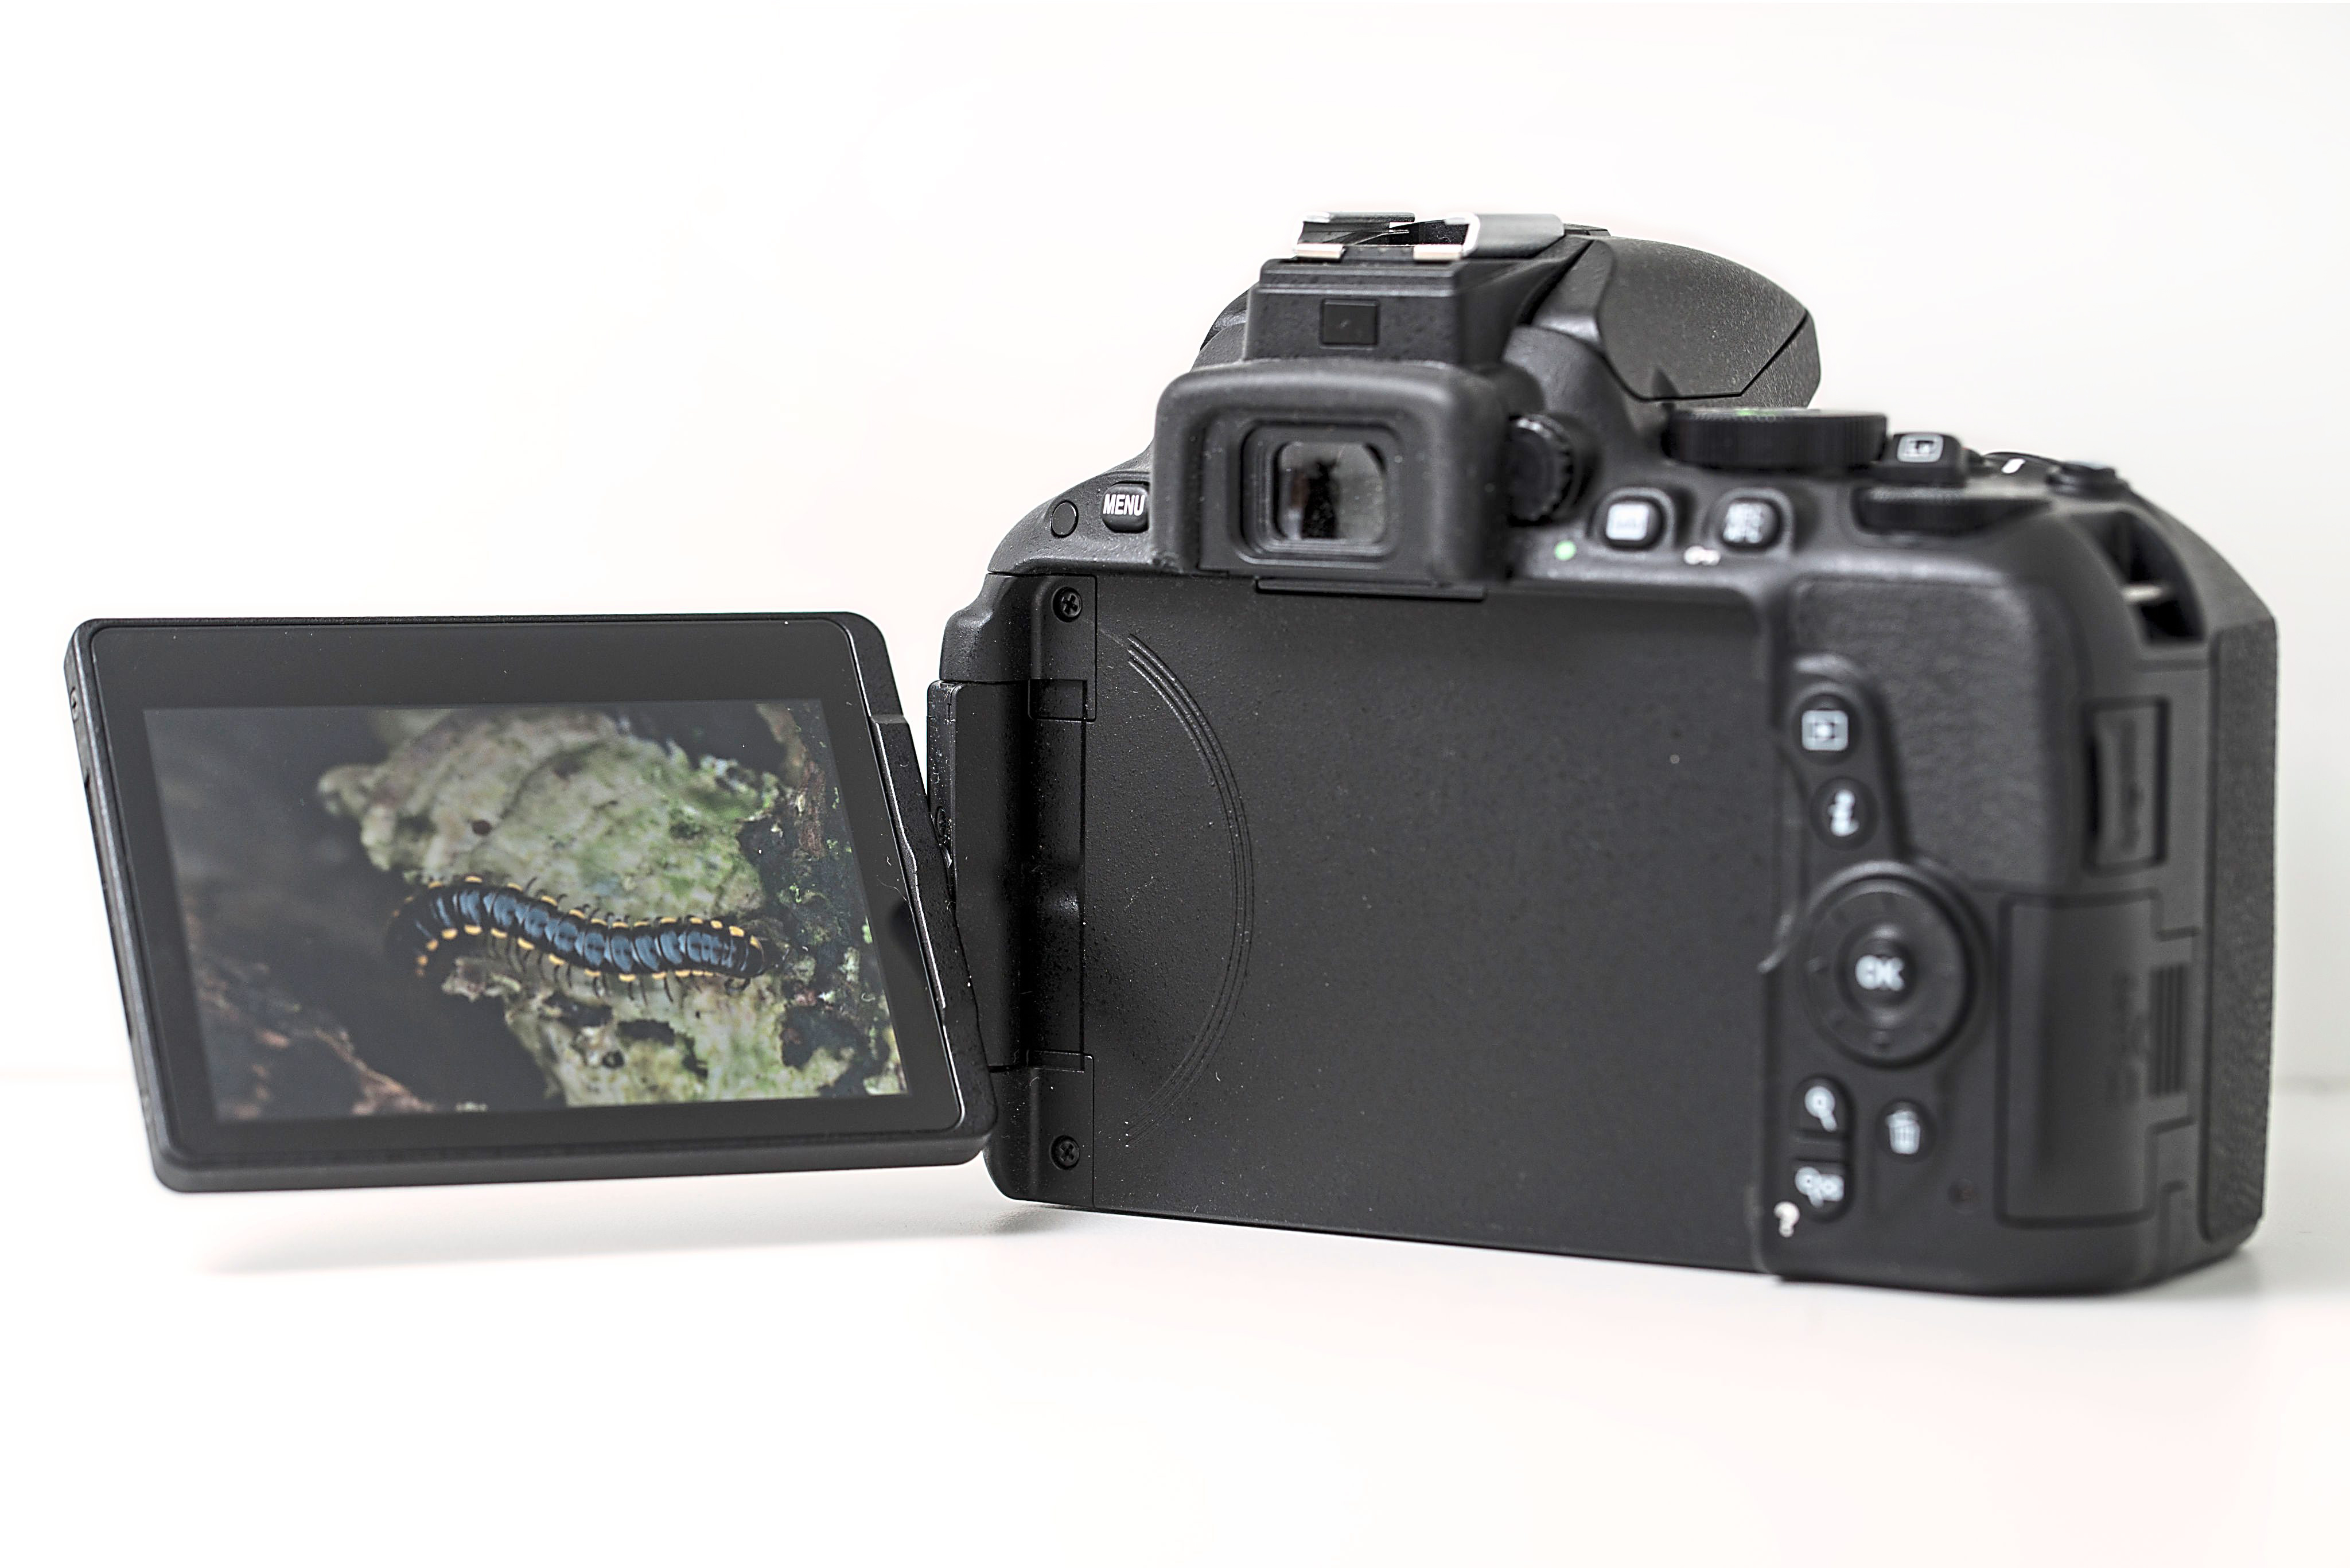 The fully articulating touchscreen LCD on the Nikon D5500 makes shooting videos and taking selfies much easier.